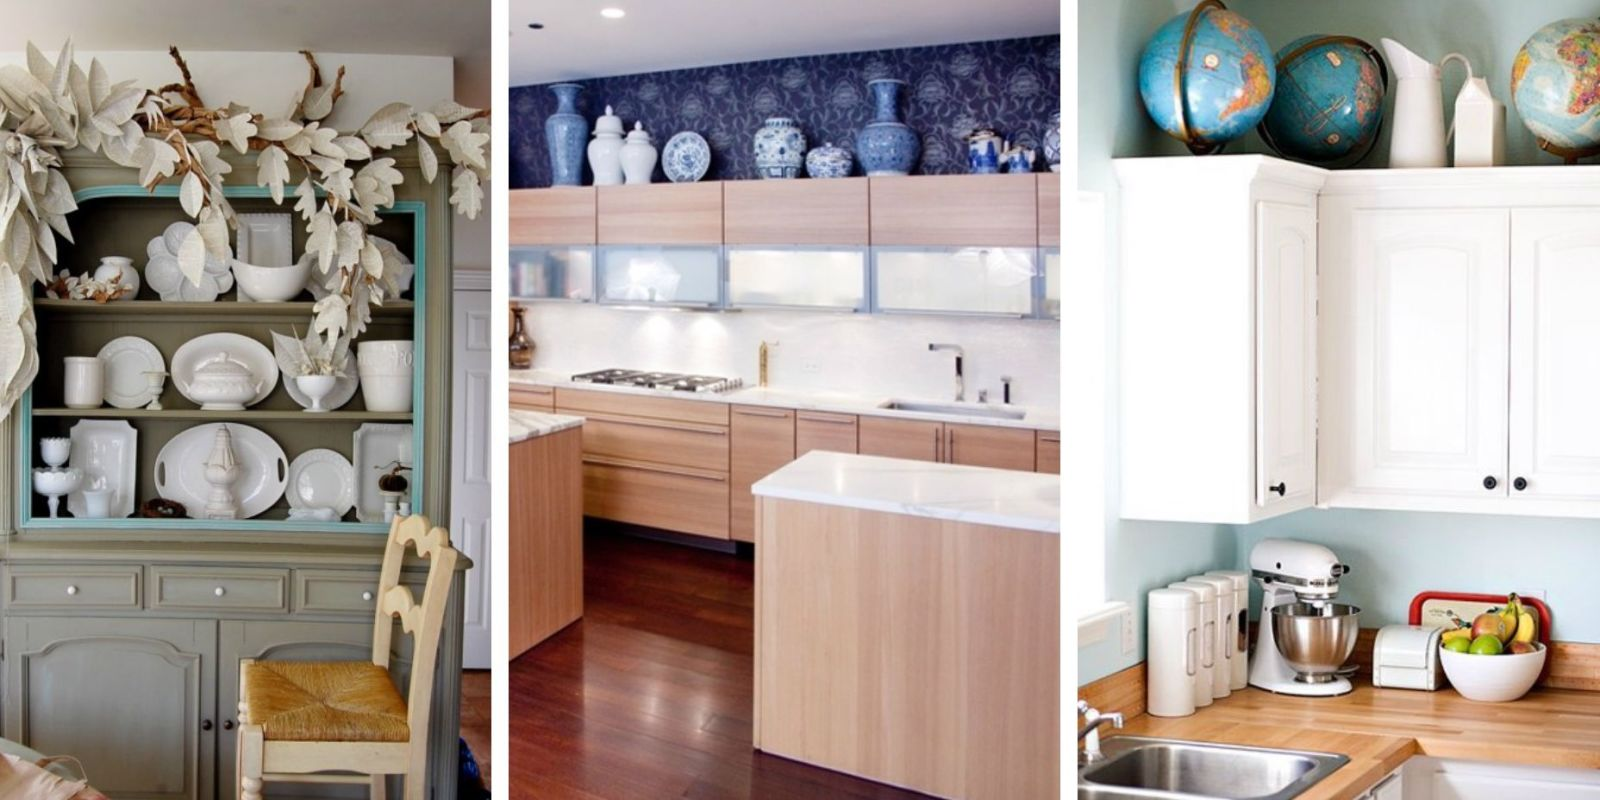 Design ideas for the space above kitchen cabinets How to decorate the top of your kitchen cabinets